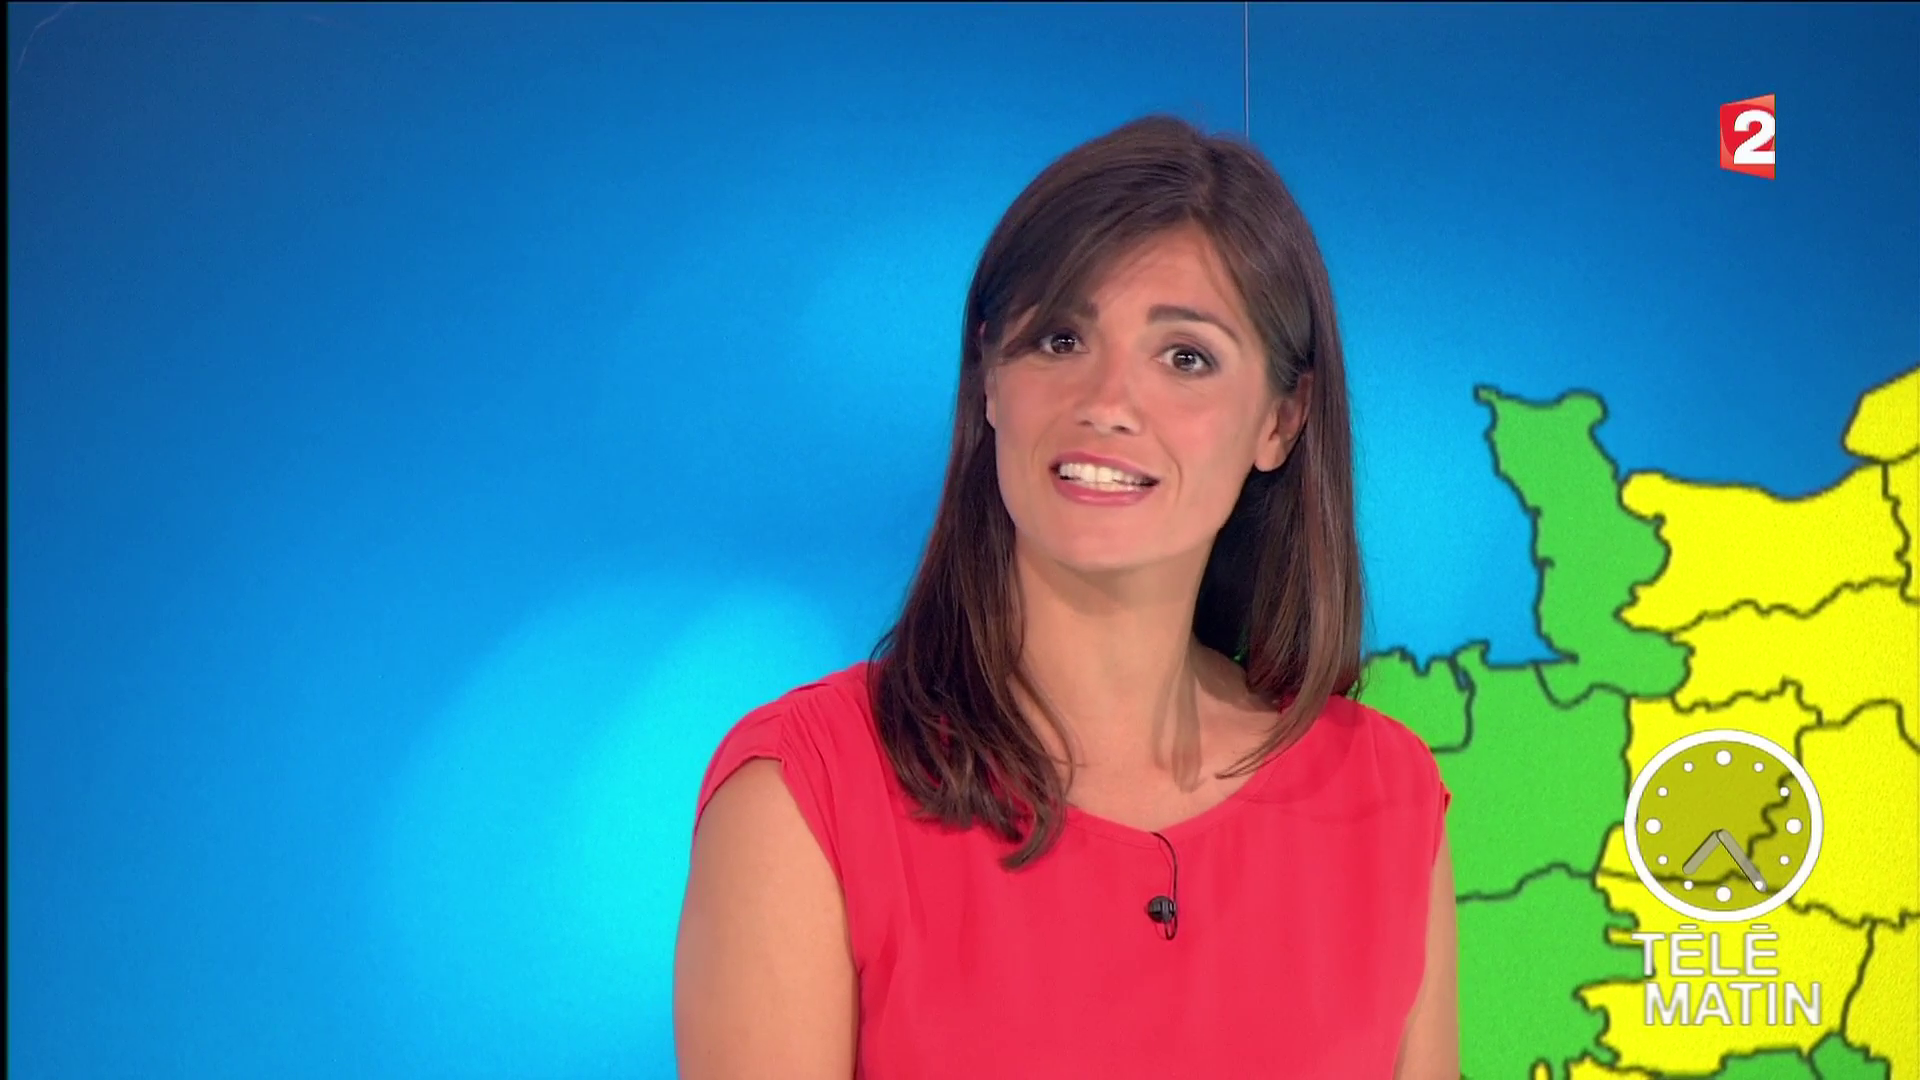 taniayoung04.2015_06_05_meteotelematinFRANCE2